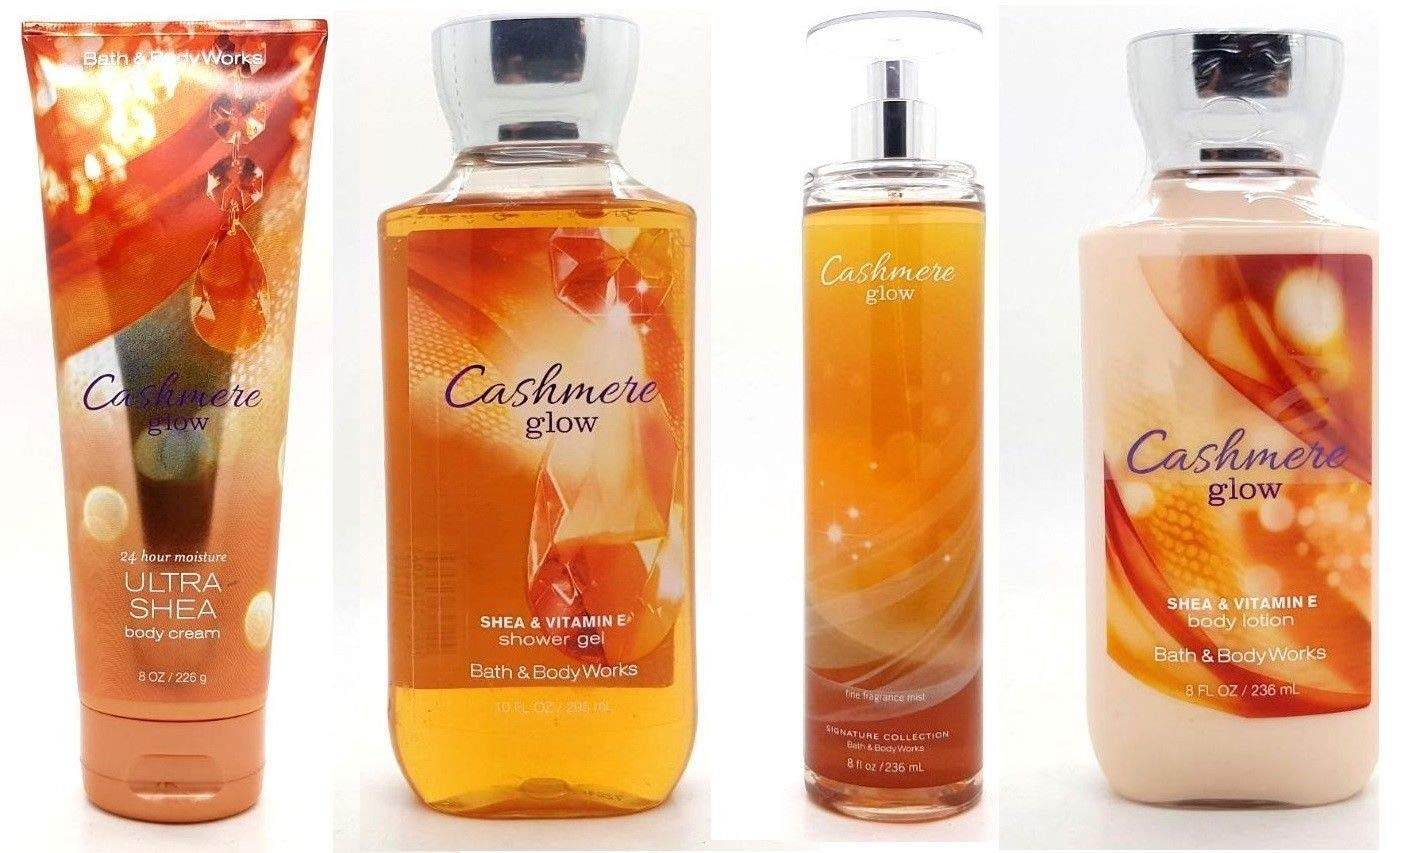 Cashmere Glow Gift Set - Signature Collection - Bath & Body Works - Body Lotion - Body Cream - Fragrance Mist & Shower Gel Full Size